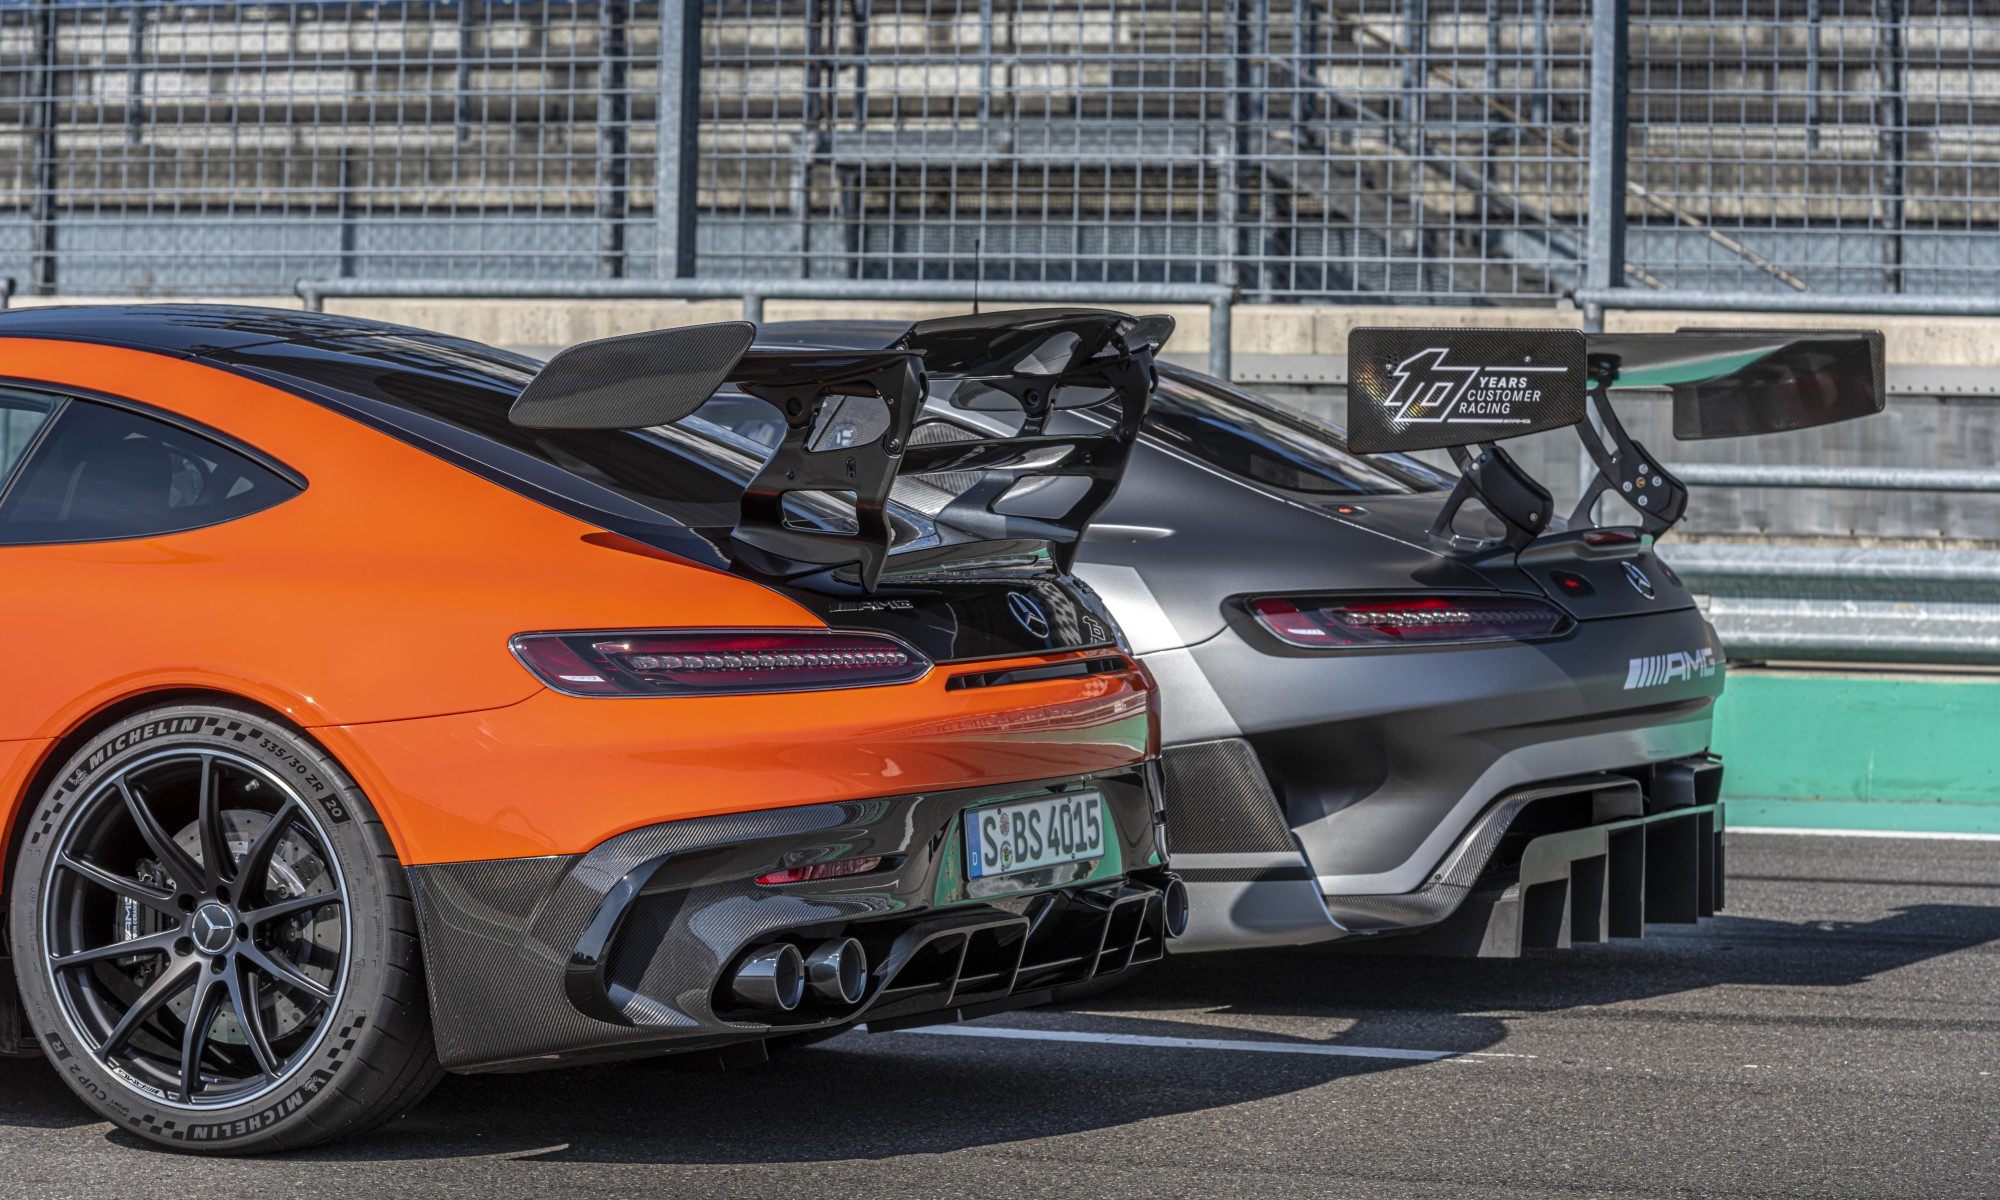 Mercedes-AMG GT Black Series with GT3 racer rear